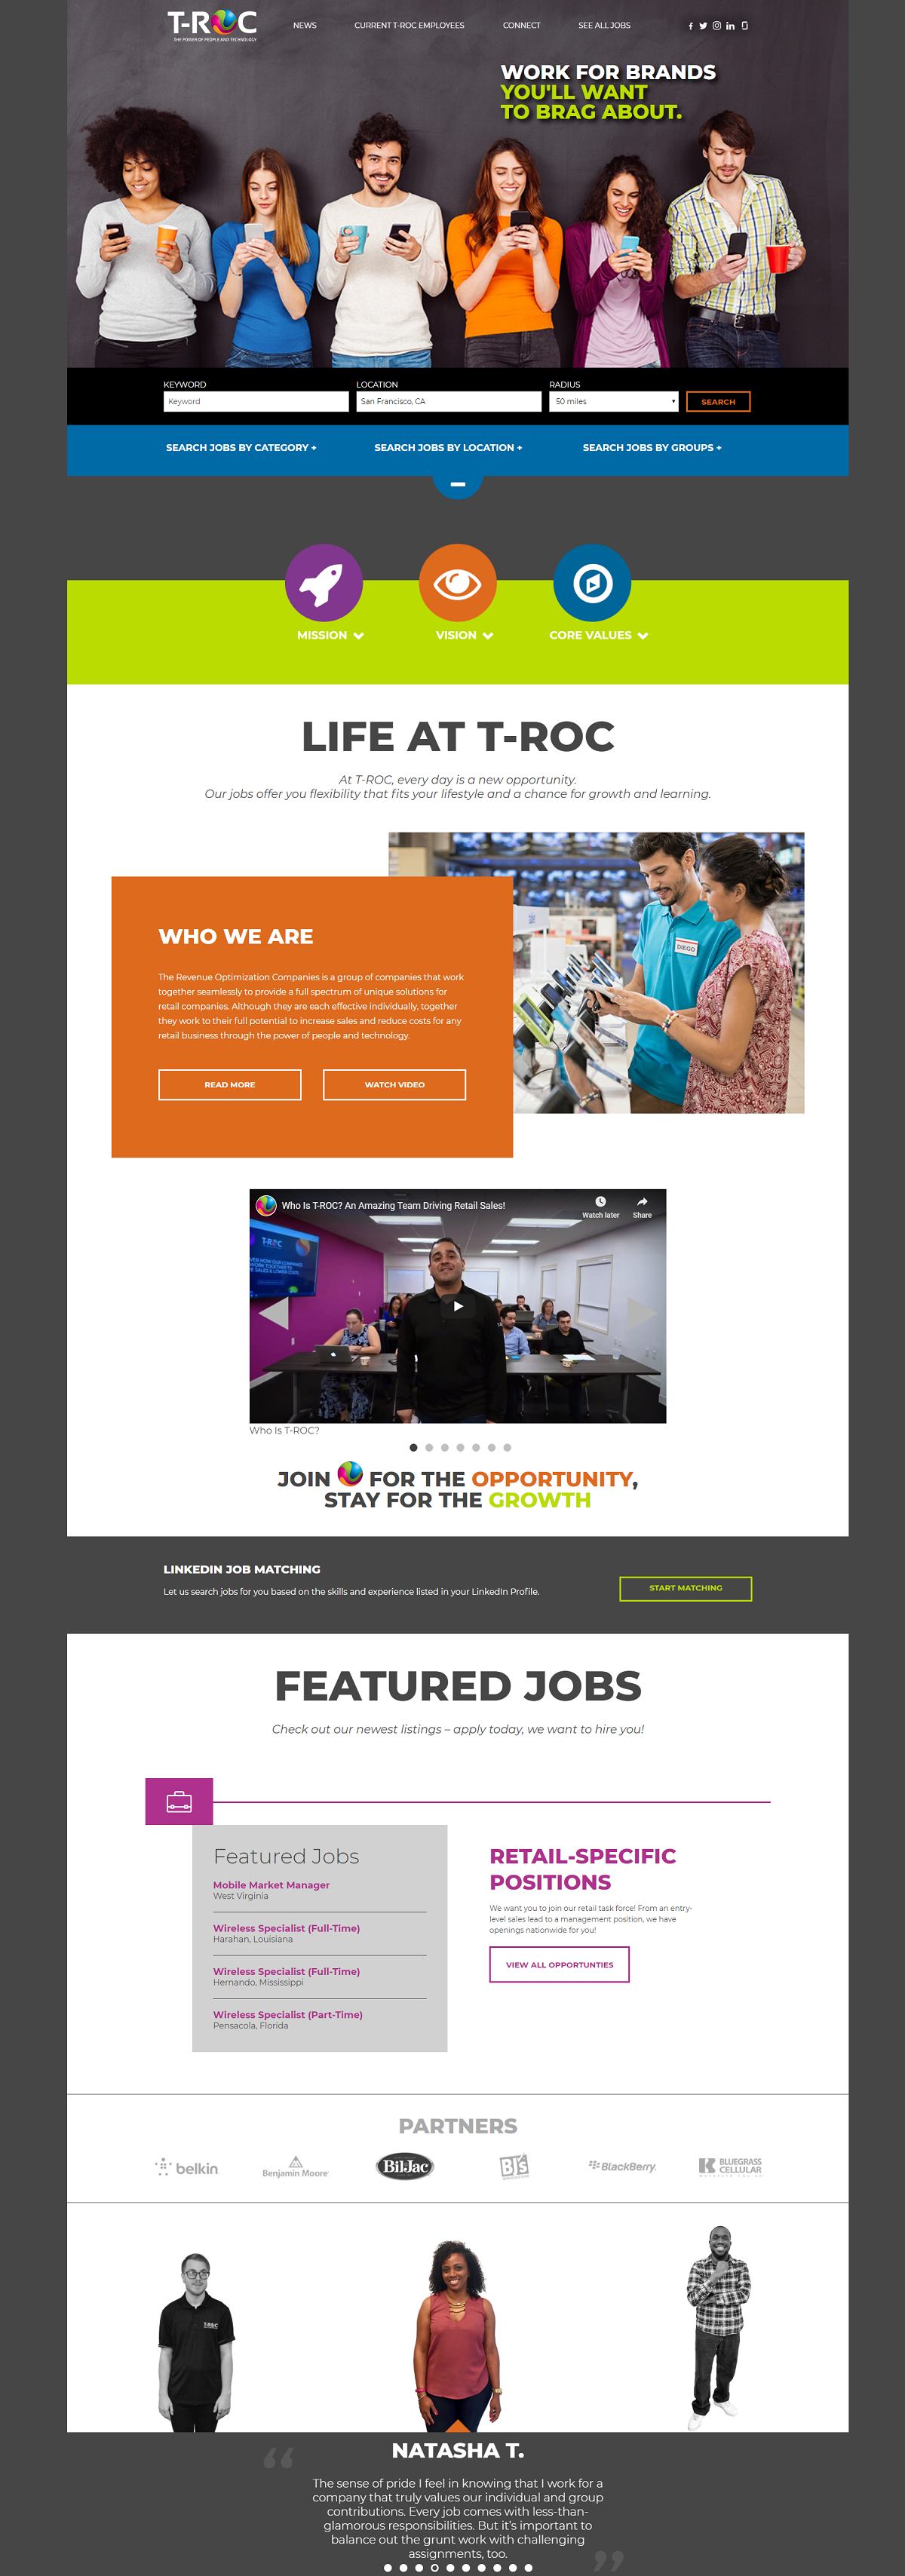 T-roc company career page